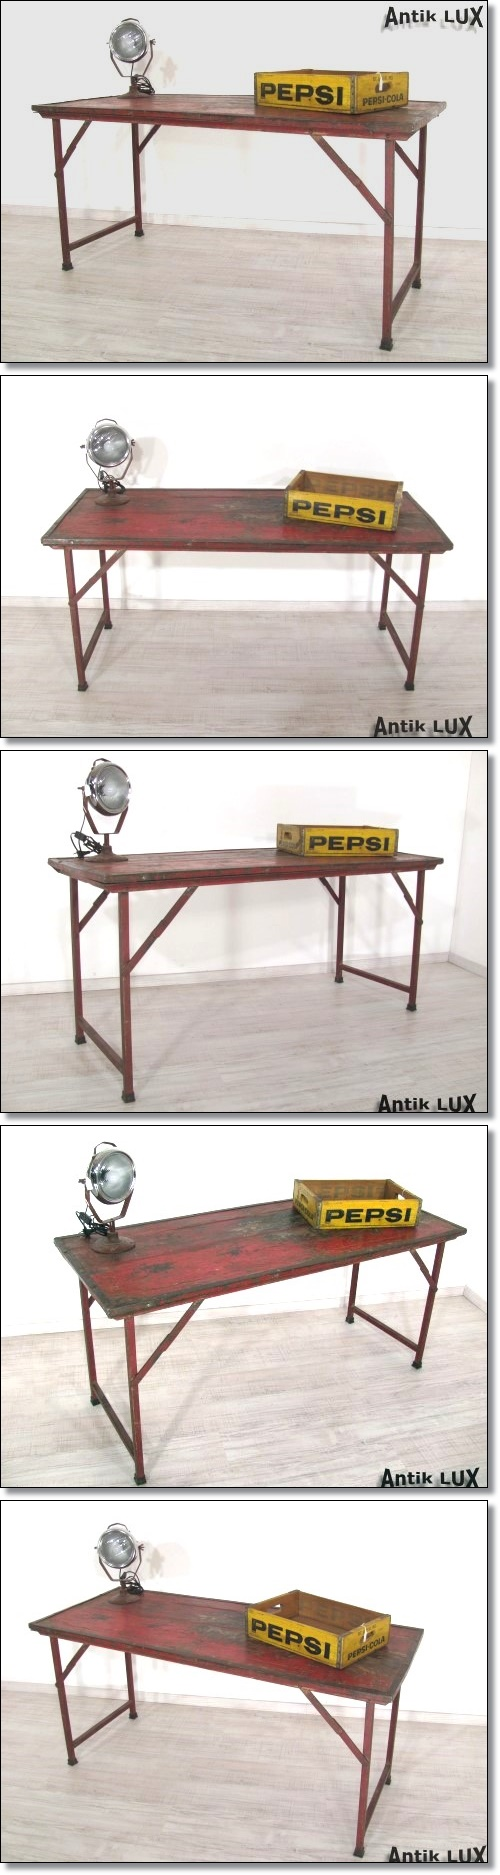 antiker klapptisch industriedesign schreibtisch tisch shabby chic rot metall ebay. Black Bedroom Furniture Sets. Home Design Ideas